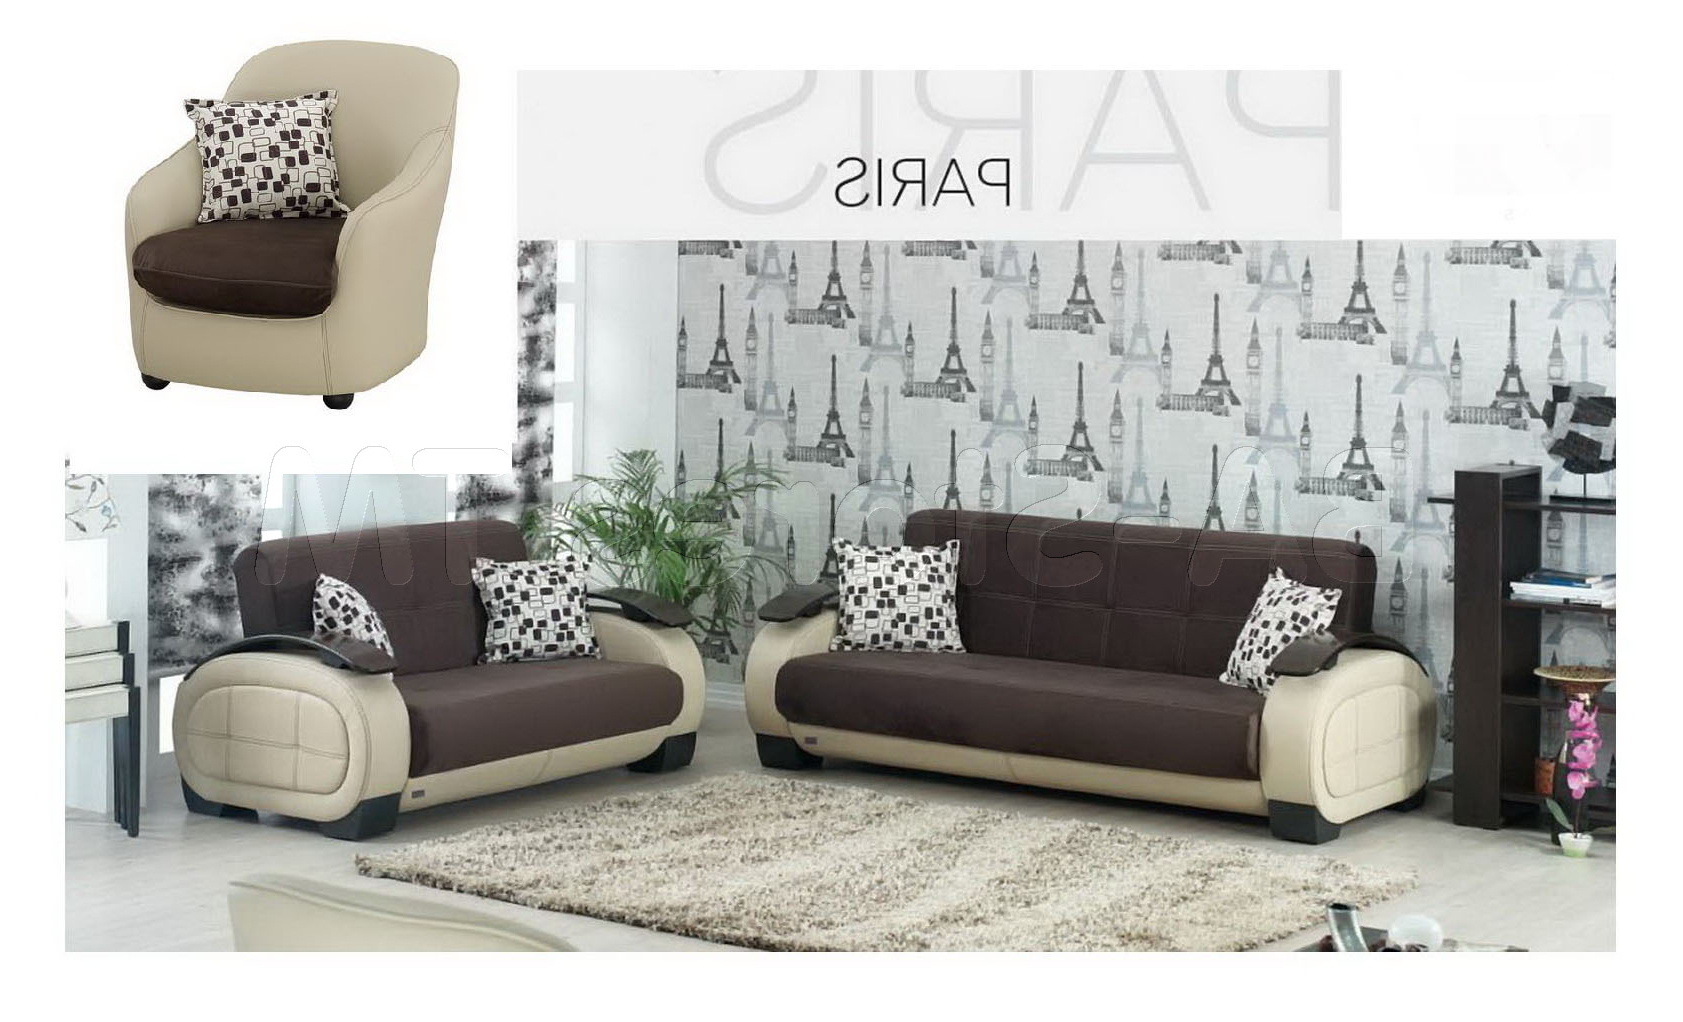 Lovely Sofa And Chair Set 61 On Living Room Sofa Inspiration With With Regard To Most Recent Sofa And Chair Set (View 5 of 20)